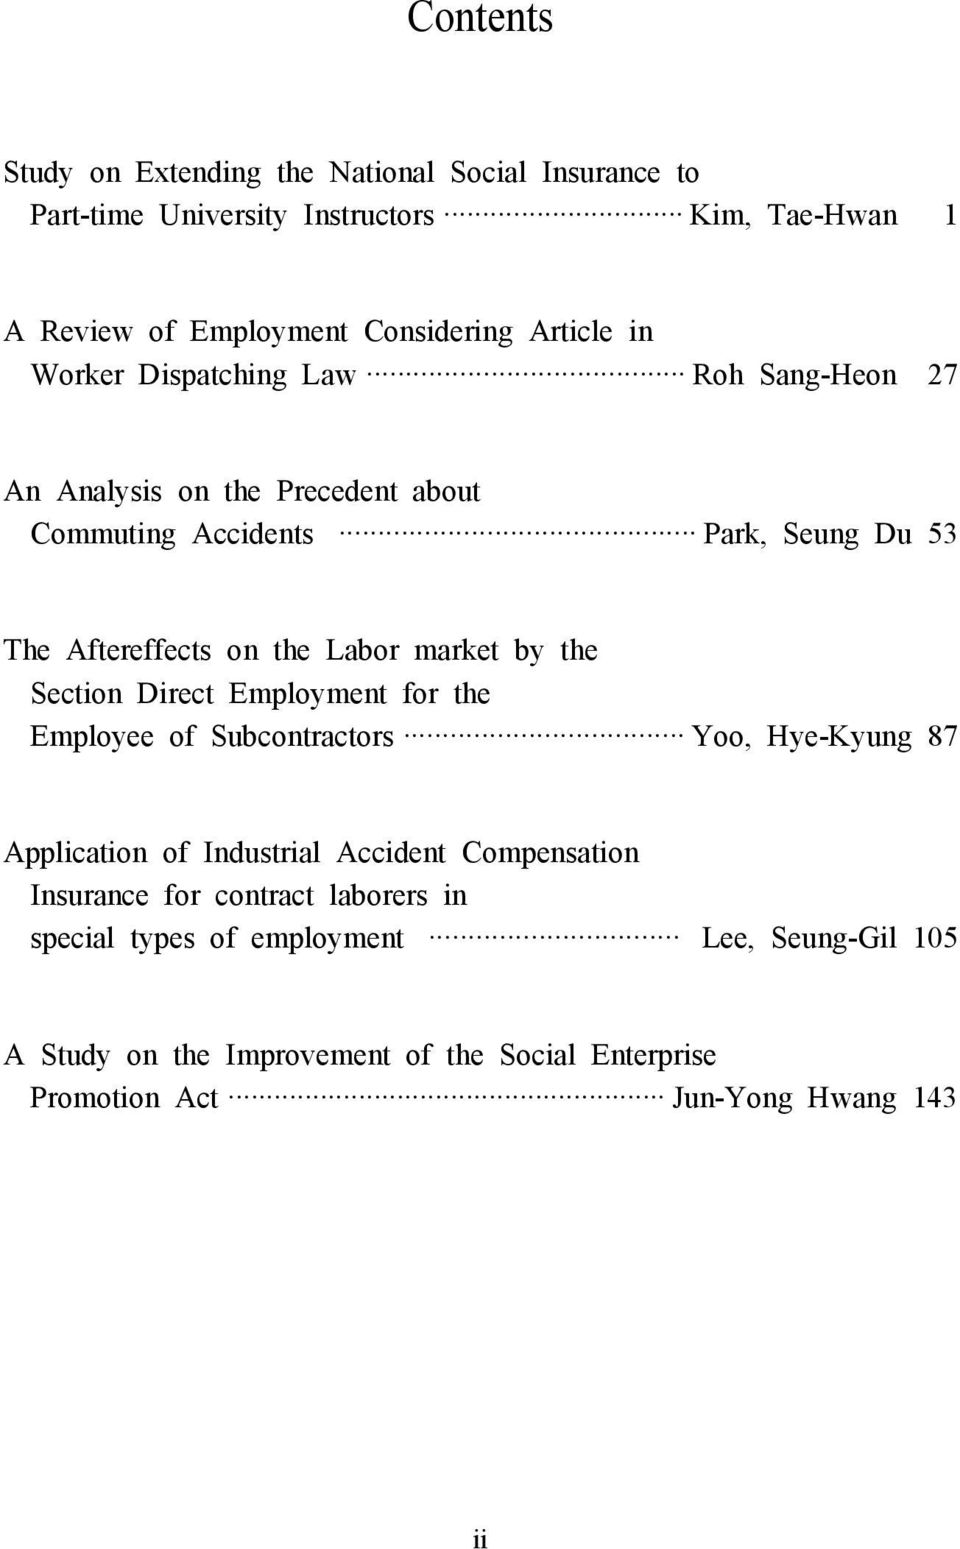 by the Section Direct Employment for the Employee of Subcontractors Yoo, Hye-Kyung 87 Application of Industrial Accident Compensation Insurance for